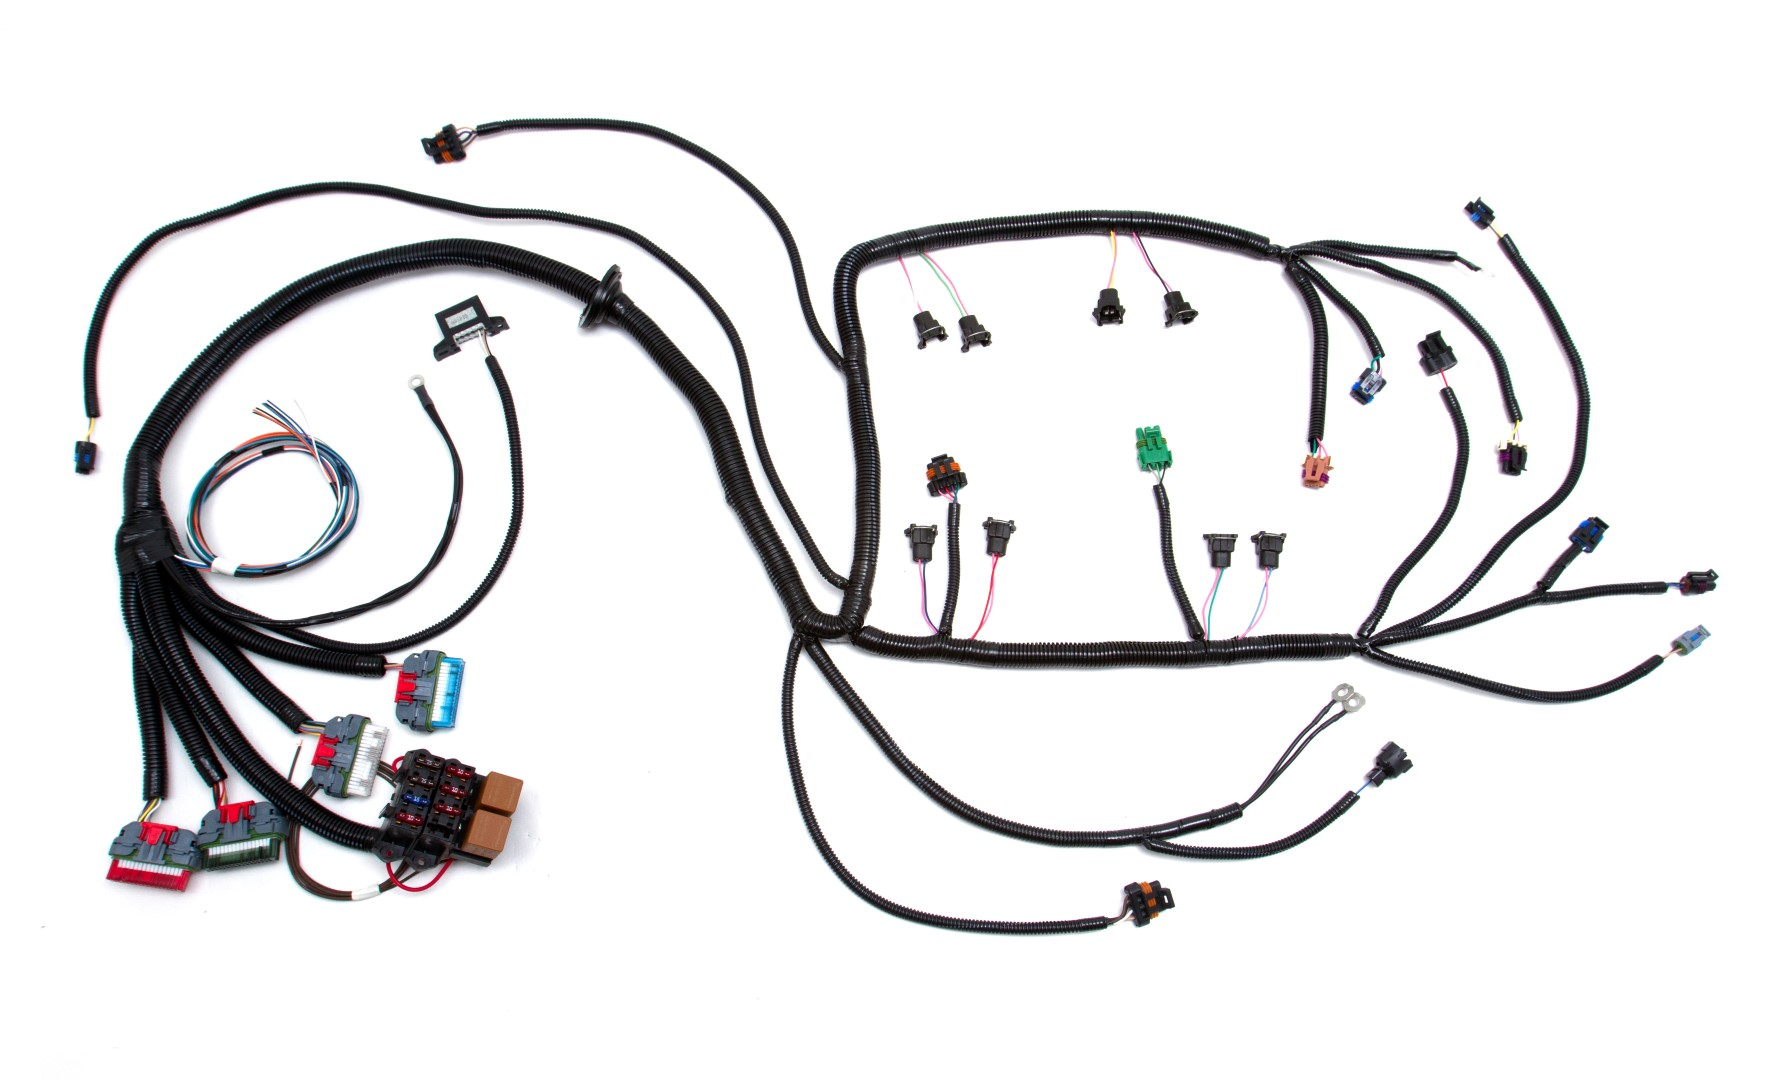 700r4 Wiring Harness Ends Free Diagram For You Schematic 20 Images Transmission